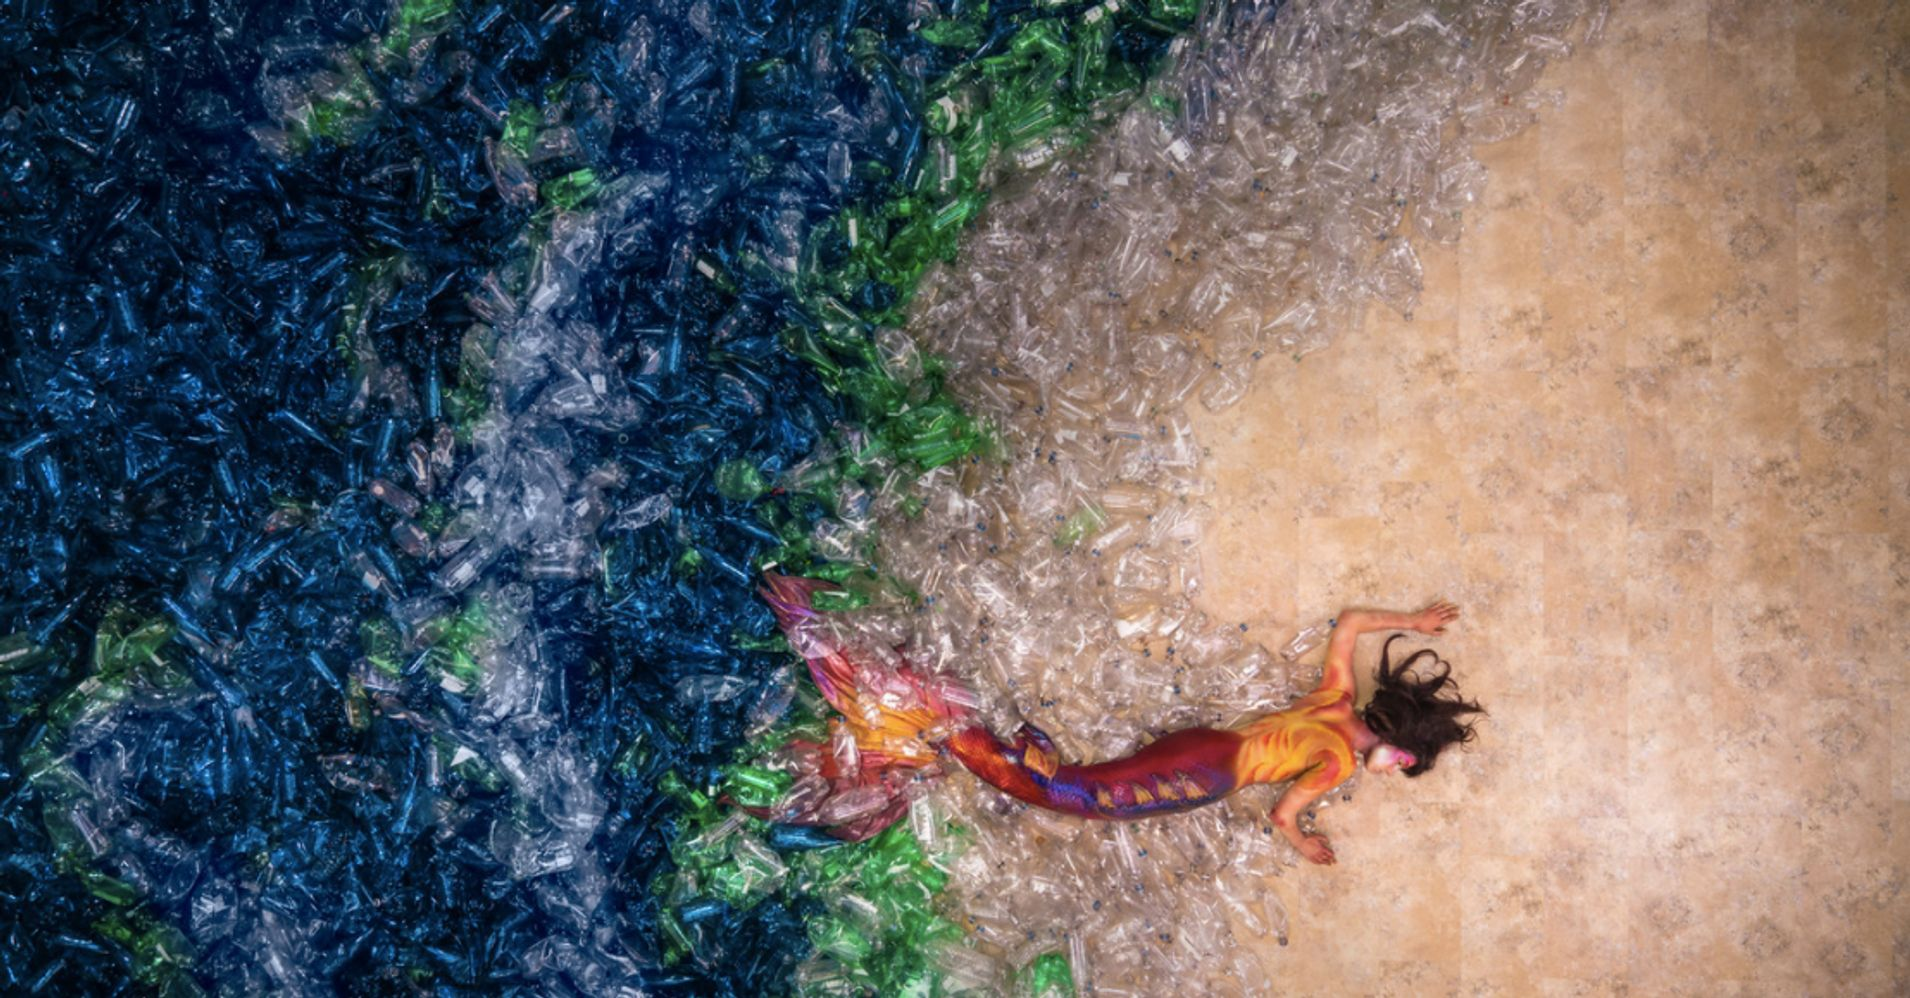 Mesmerizing Mermaid Photos Reveal Awful Truth About Our Oceans